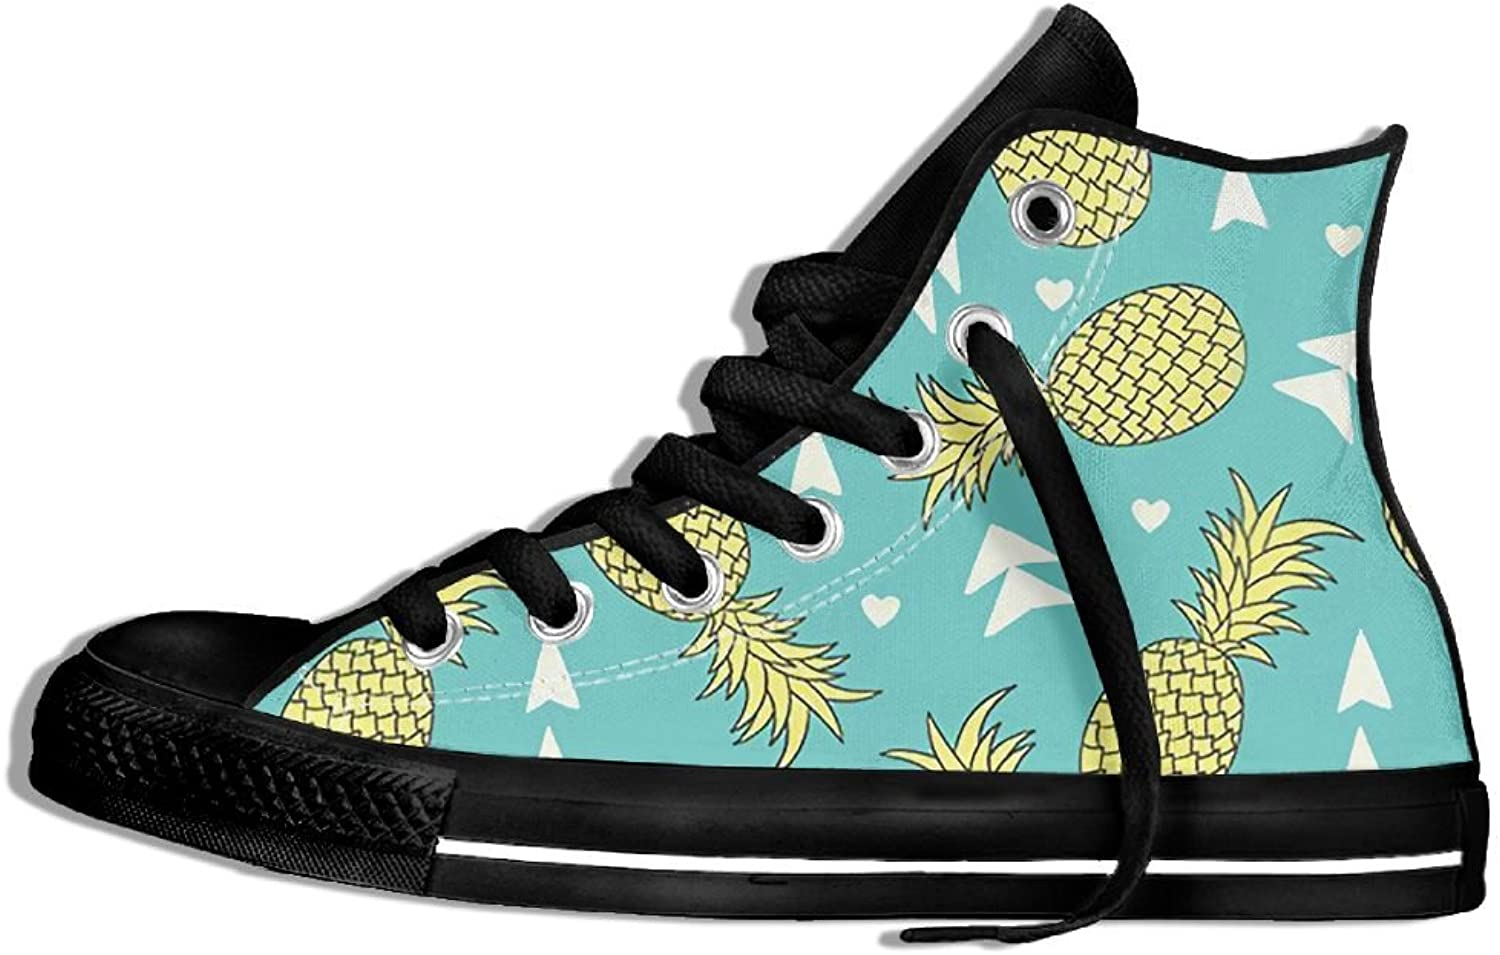 Unisex Hi-Top Canvas Sneakers Pineapple Flat Anti-slip Running Trainers shoes